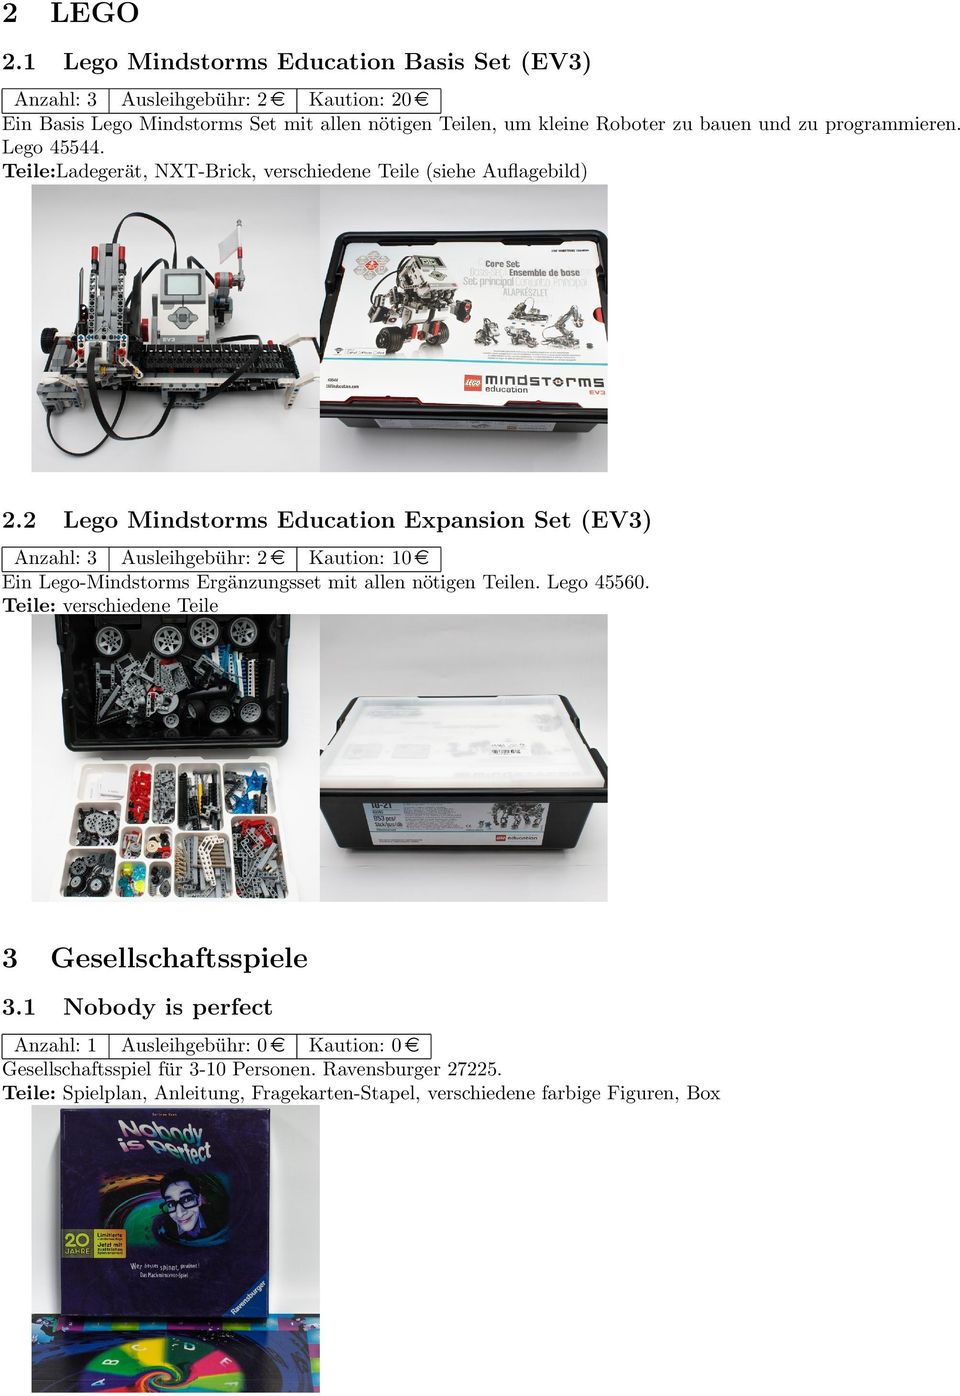 2 Lego Mindstorms Education Expansion Set (EV3) Anzahl: 3 Ausleihgebu hr: 2 e Kaution: 10 e Ein Lego-Mindstorms Erga nzungsset mit allen no tigen Teilen. Lego 45560.